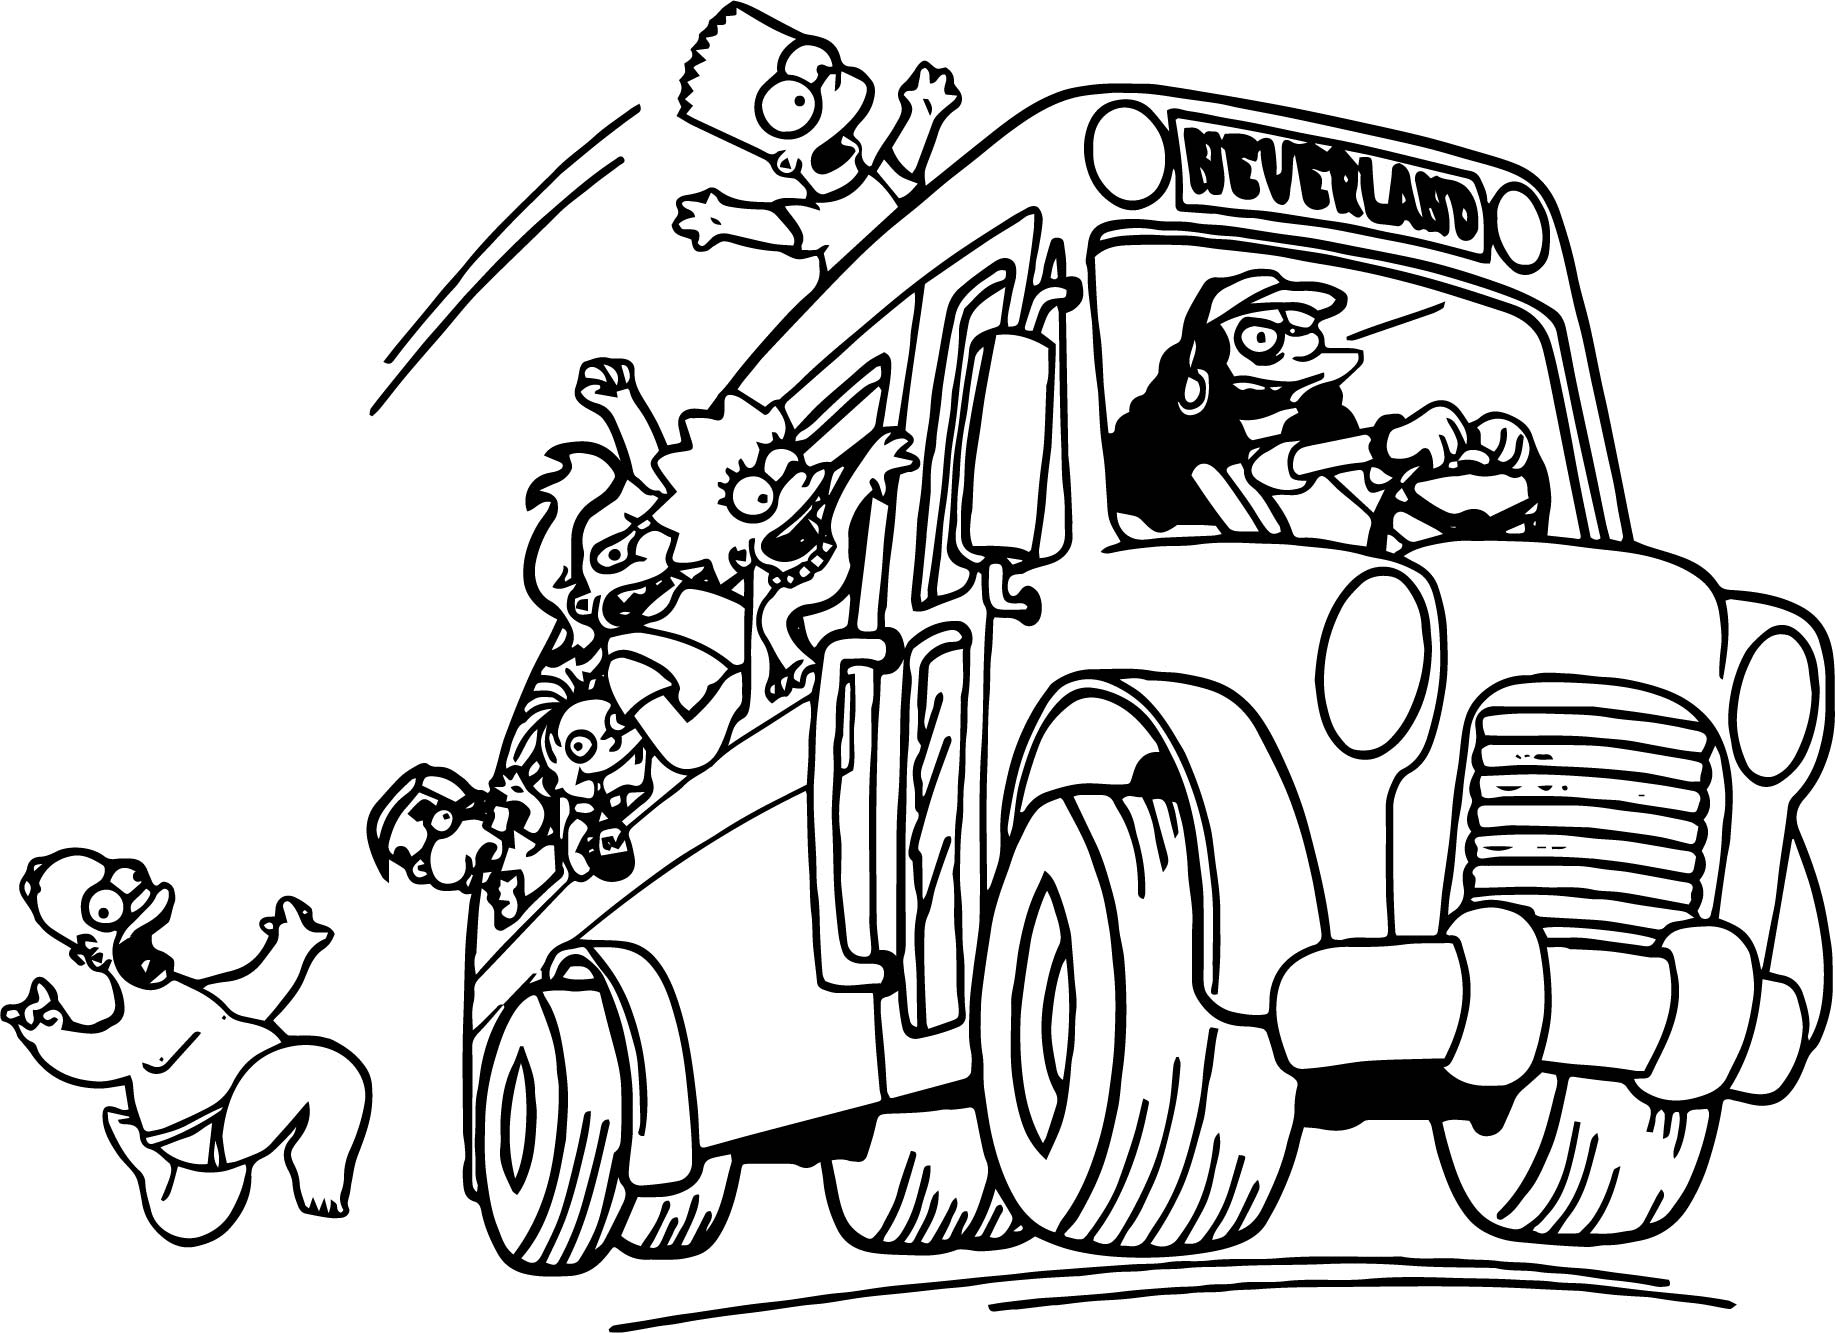 The Simpsons Catch Car Coloring Page | Wecoloringpage